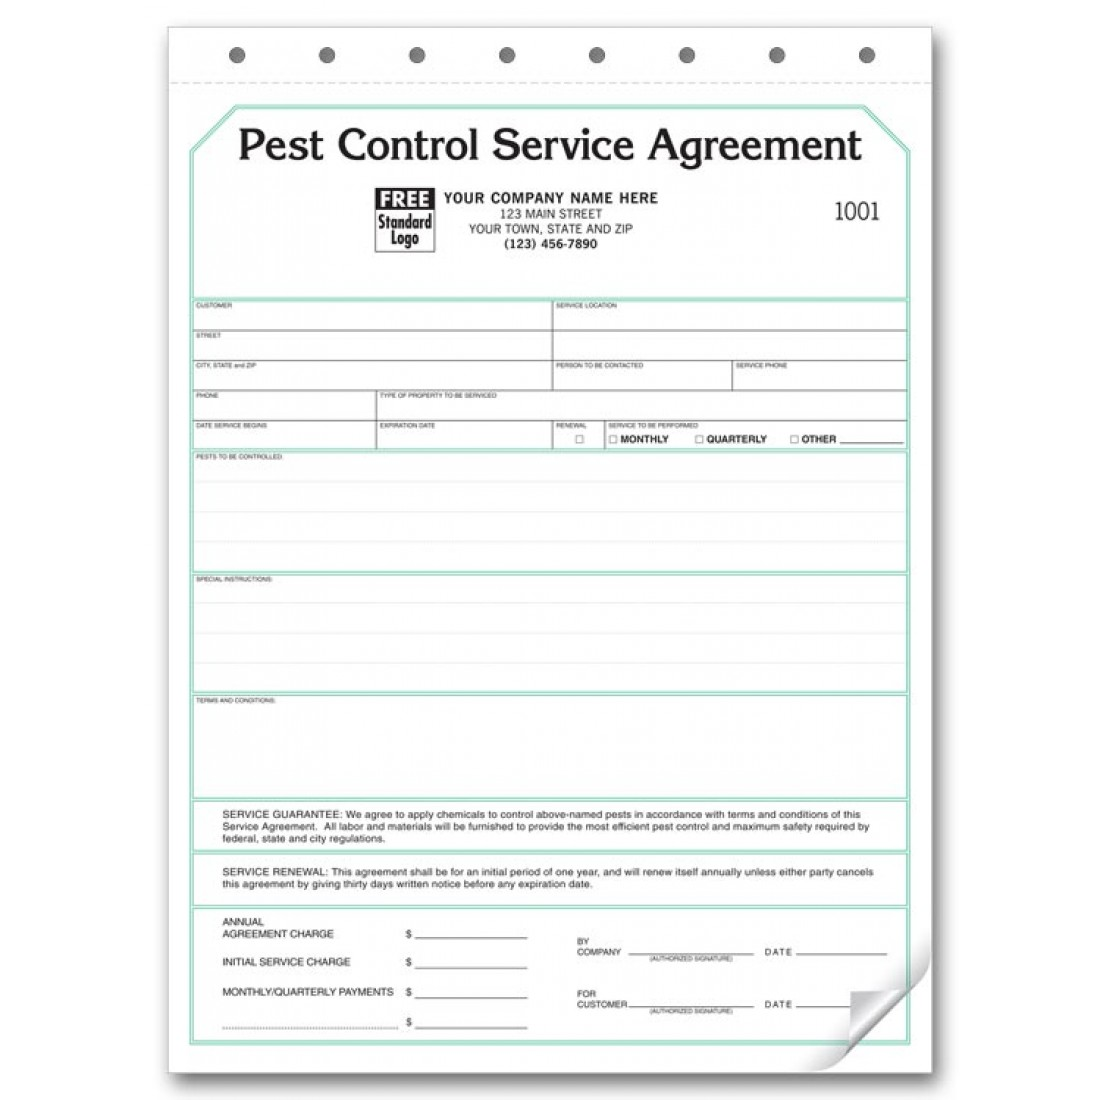 Pest Control Contract Service Agreements Free Shipping - Pest control invoice template free best online gun store